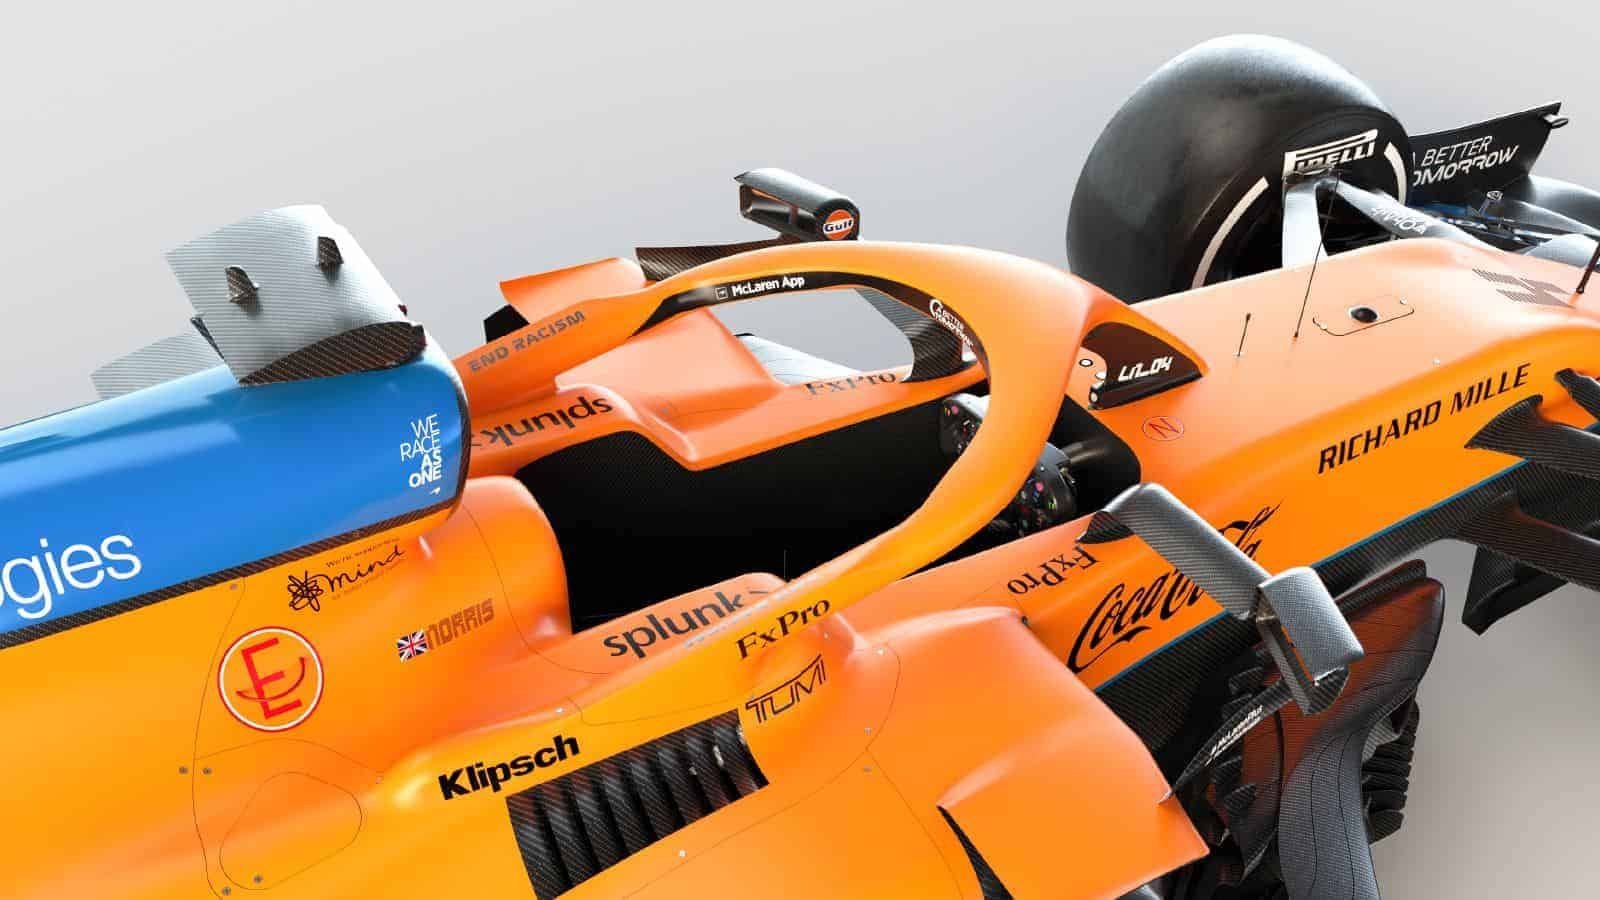 2021 McLaren MCL35M Mercedes launch studio cockpit sidepods Photo McLaren